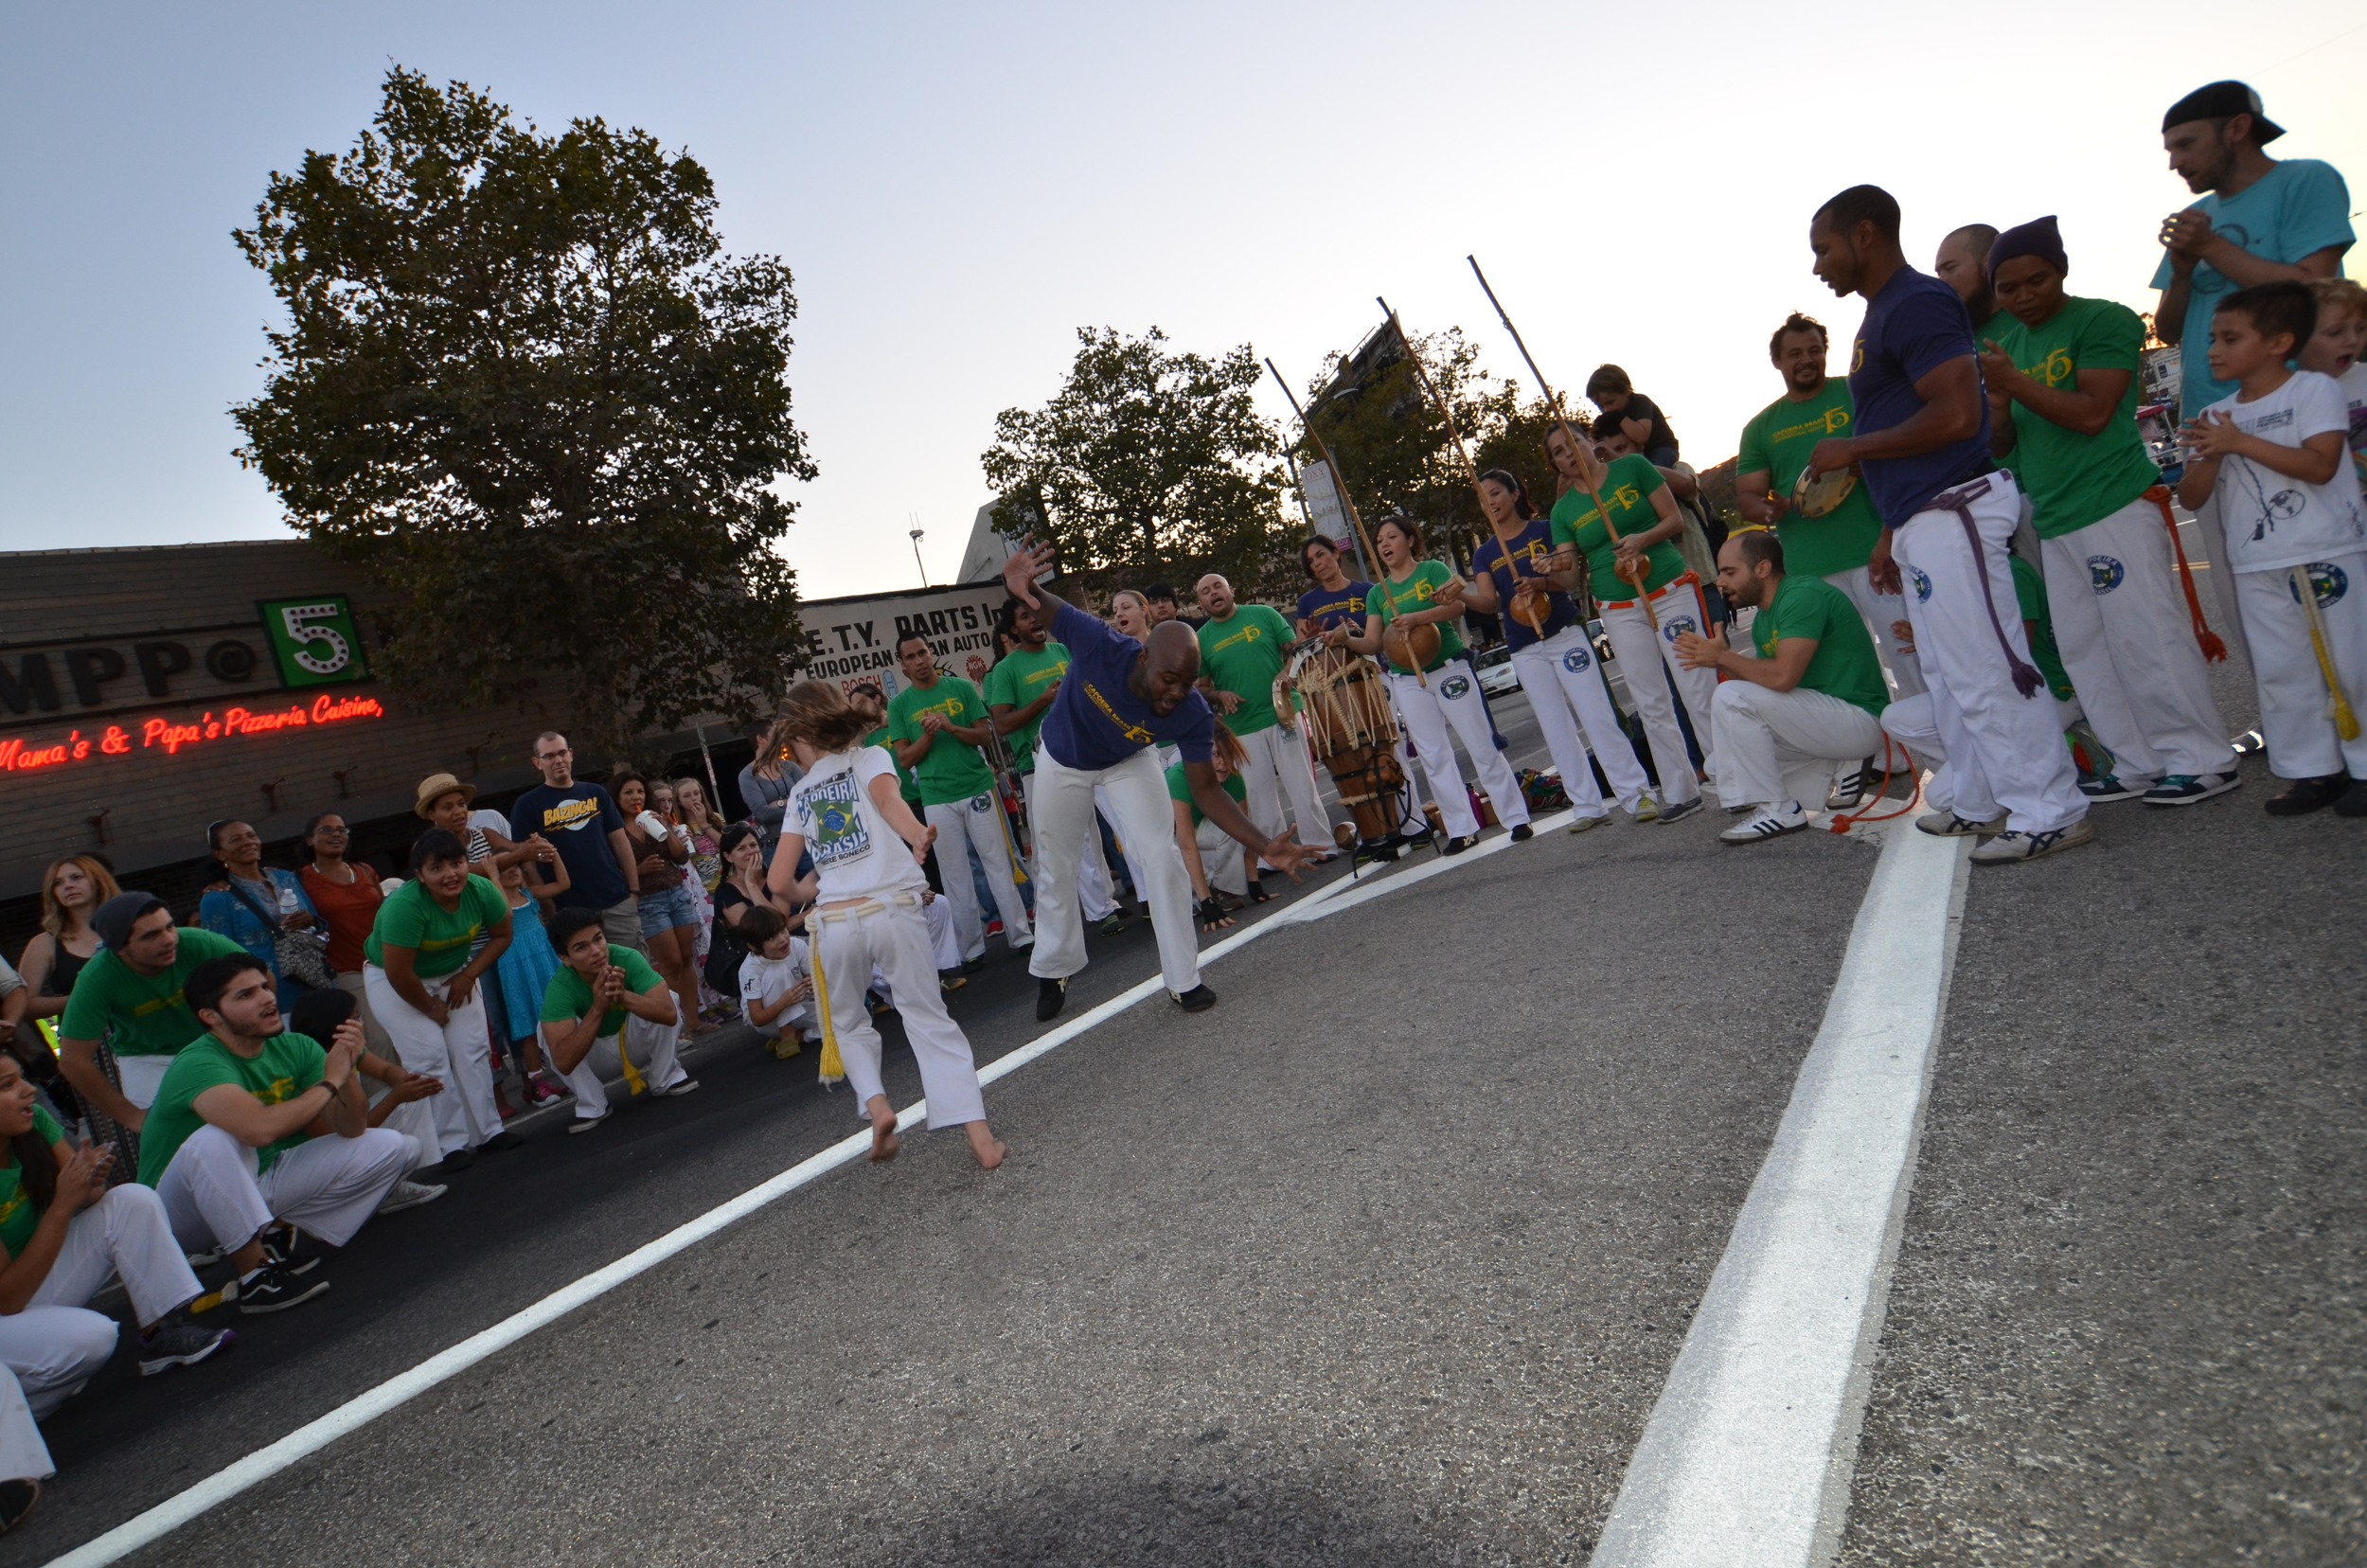 Capoeira Brasil performing at an open-air Music Festival here in Los Angeles